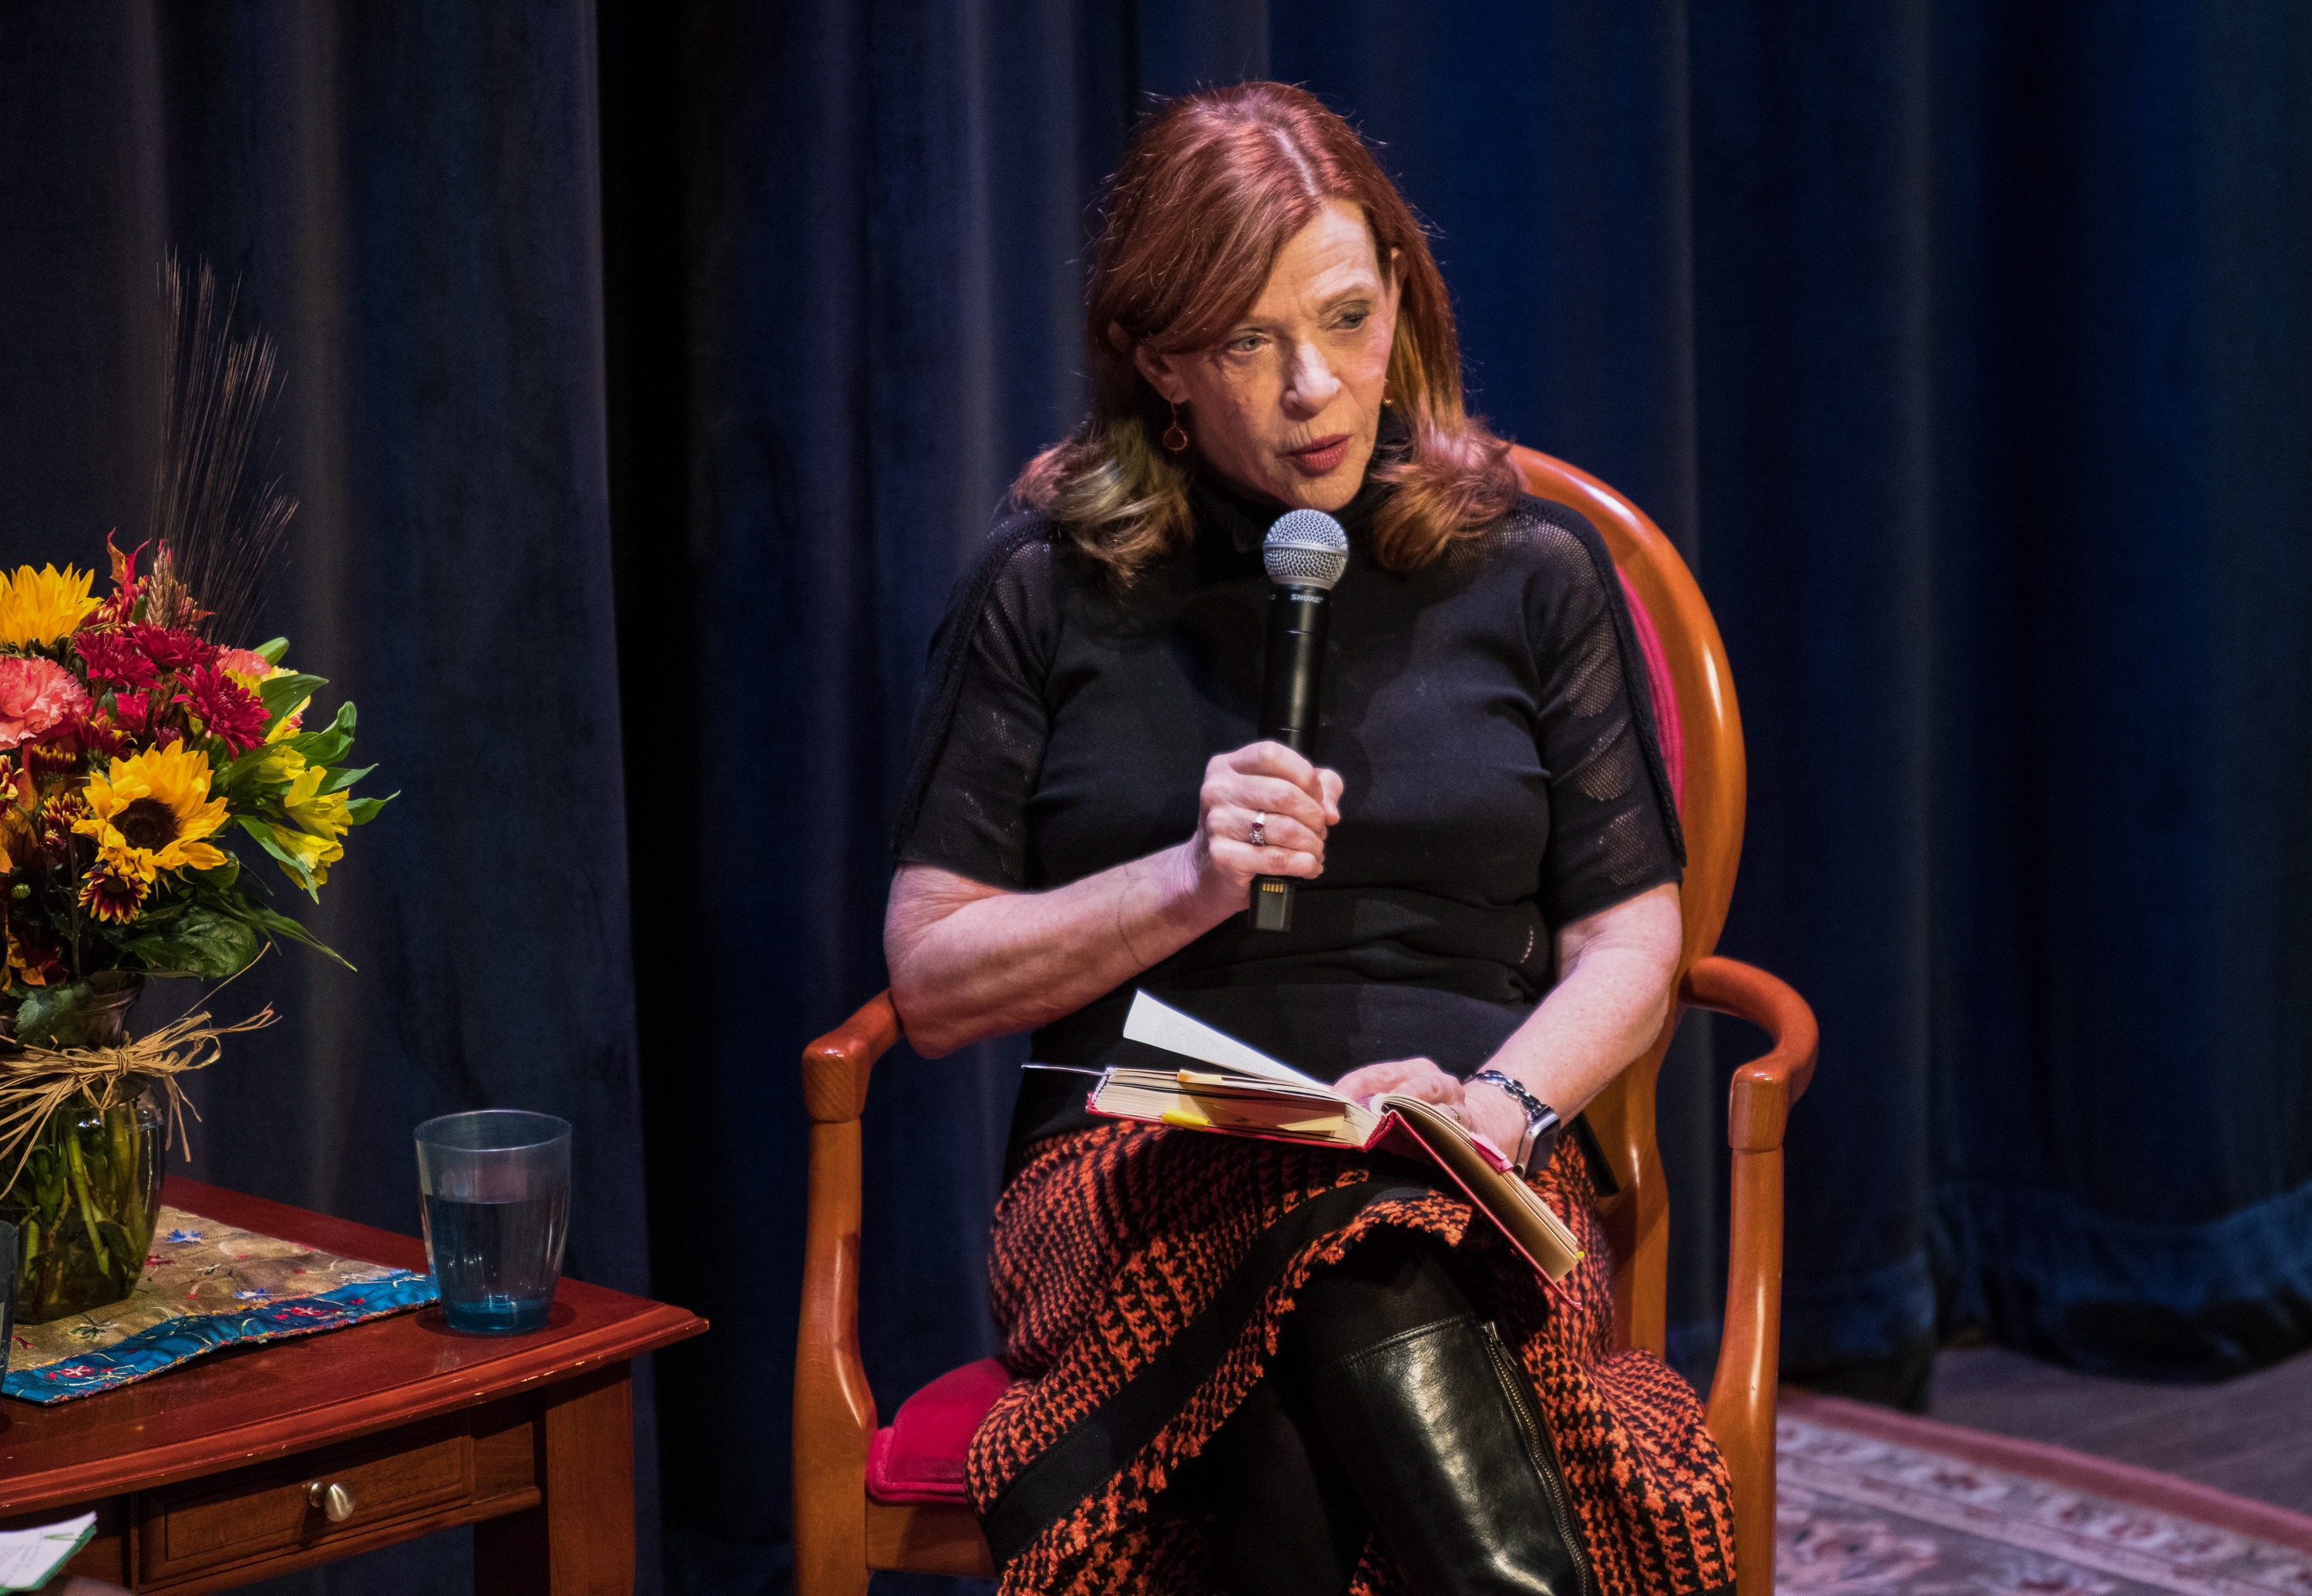 """The Library"" author Susan Orlean live on stage at the National Writers Series in Traverse City, Michigan.<em> Tom Haxby/National Writers Series&nbsp;</em>"